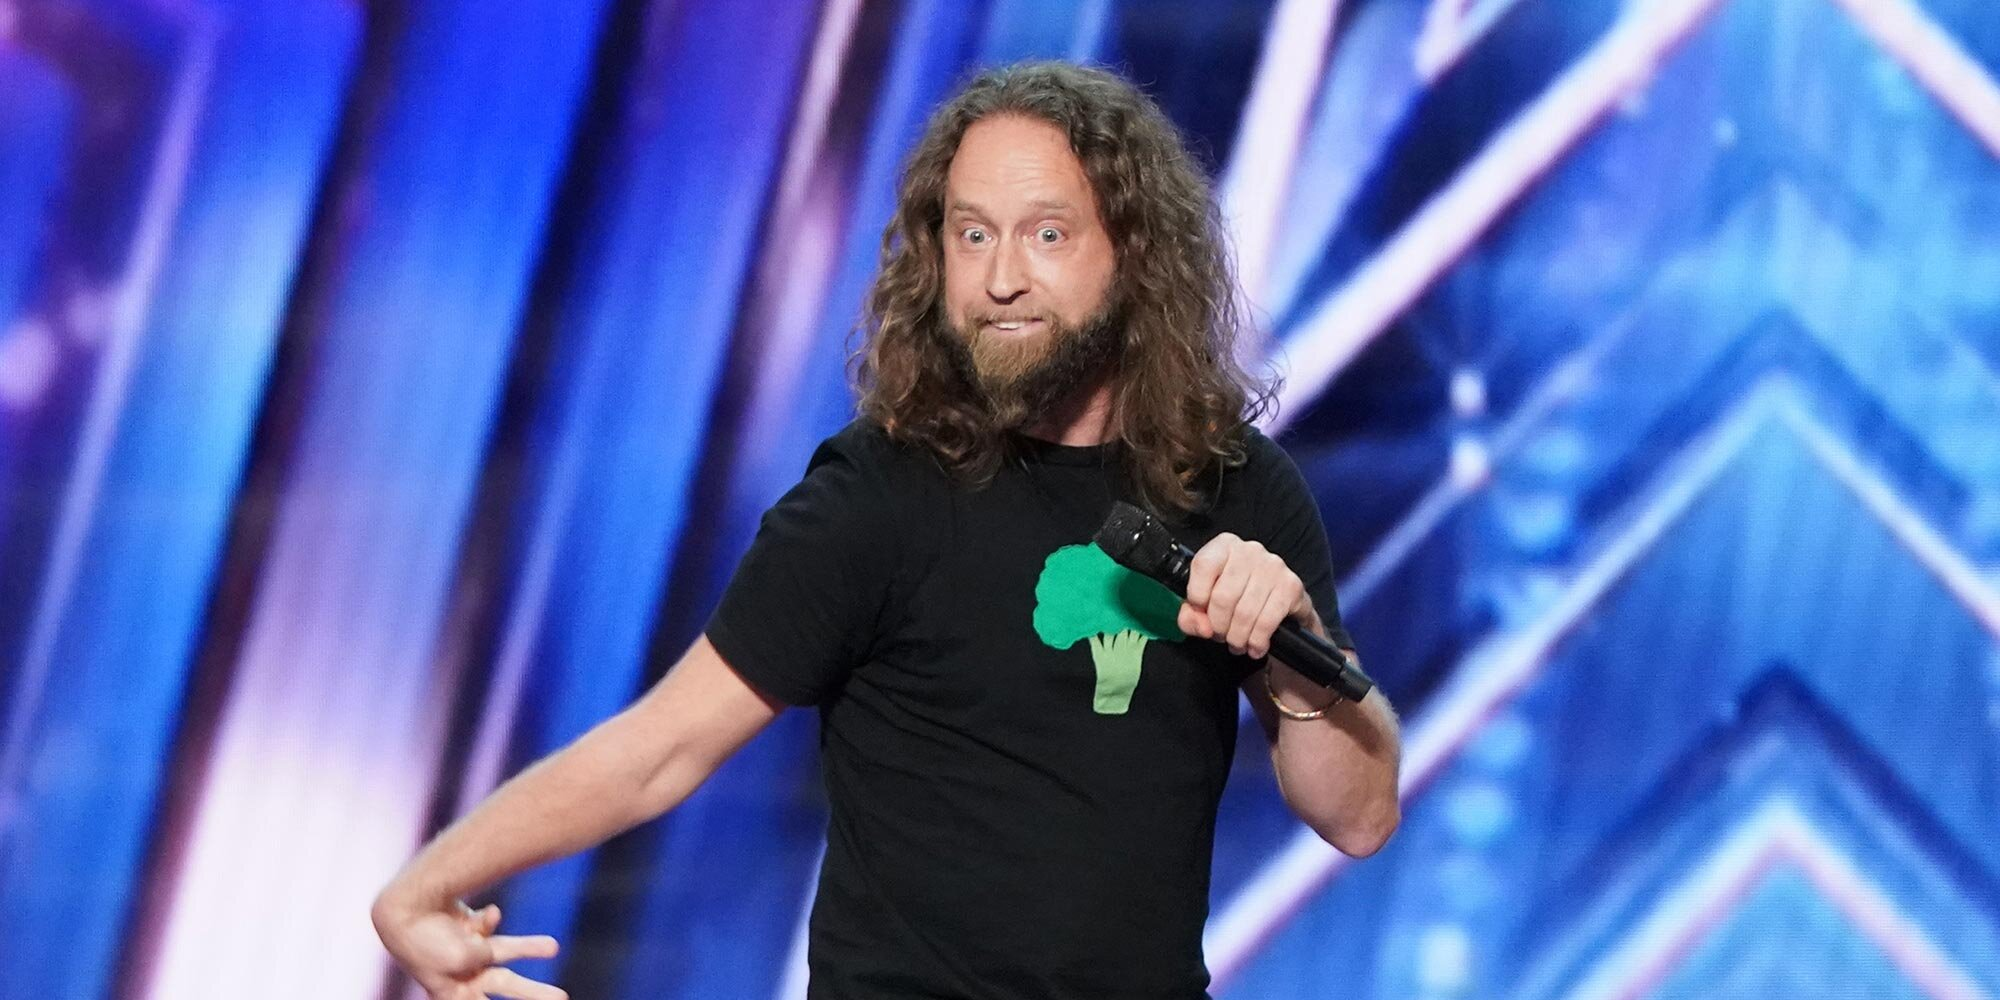 You may remember 'America's Got Talent' contender Josh Blue as a 'Last Comic Standing' winner